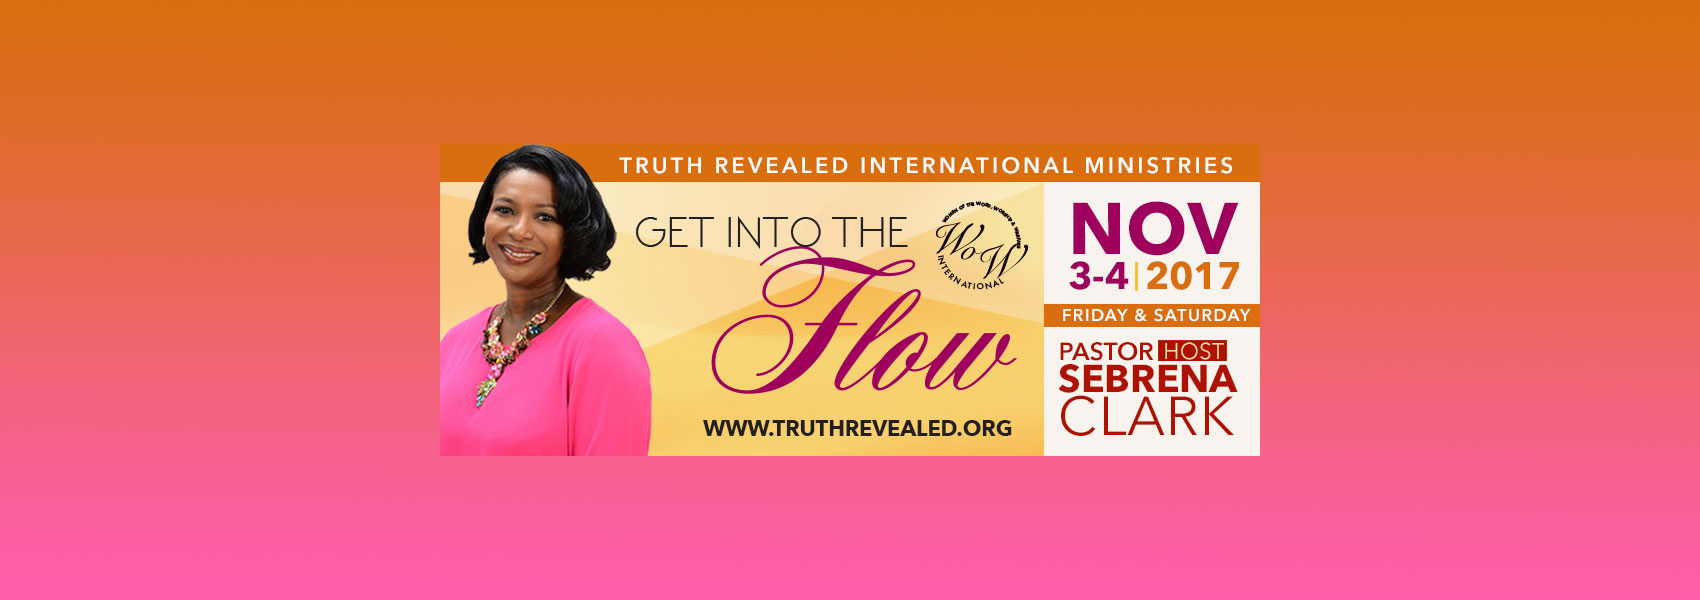 Truth Revealed International Ministries 2017 WOW Conference